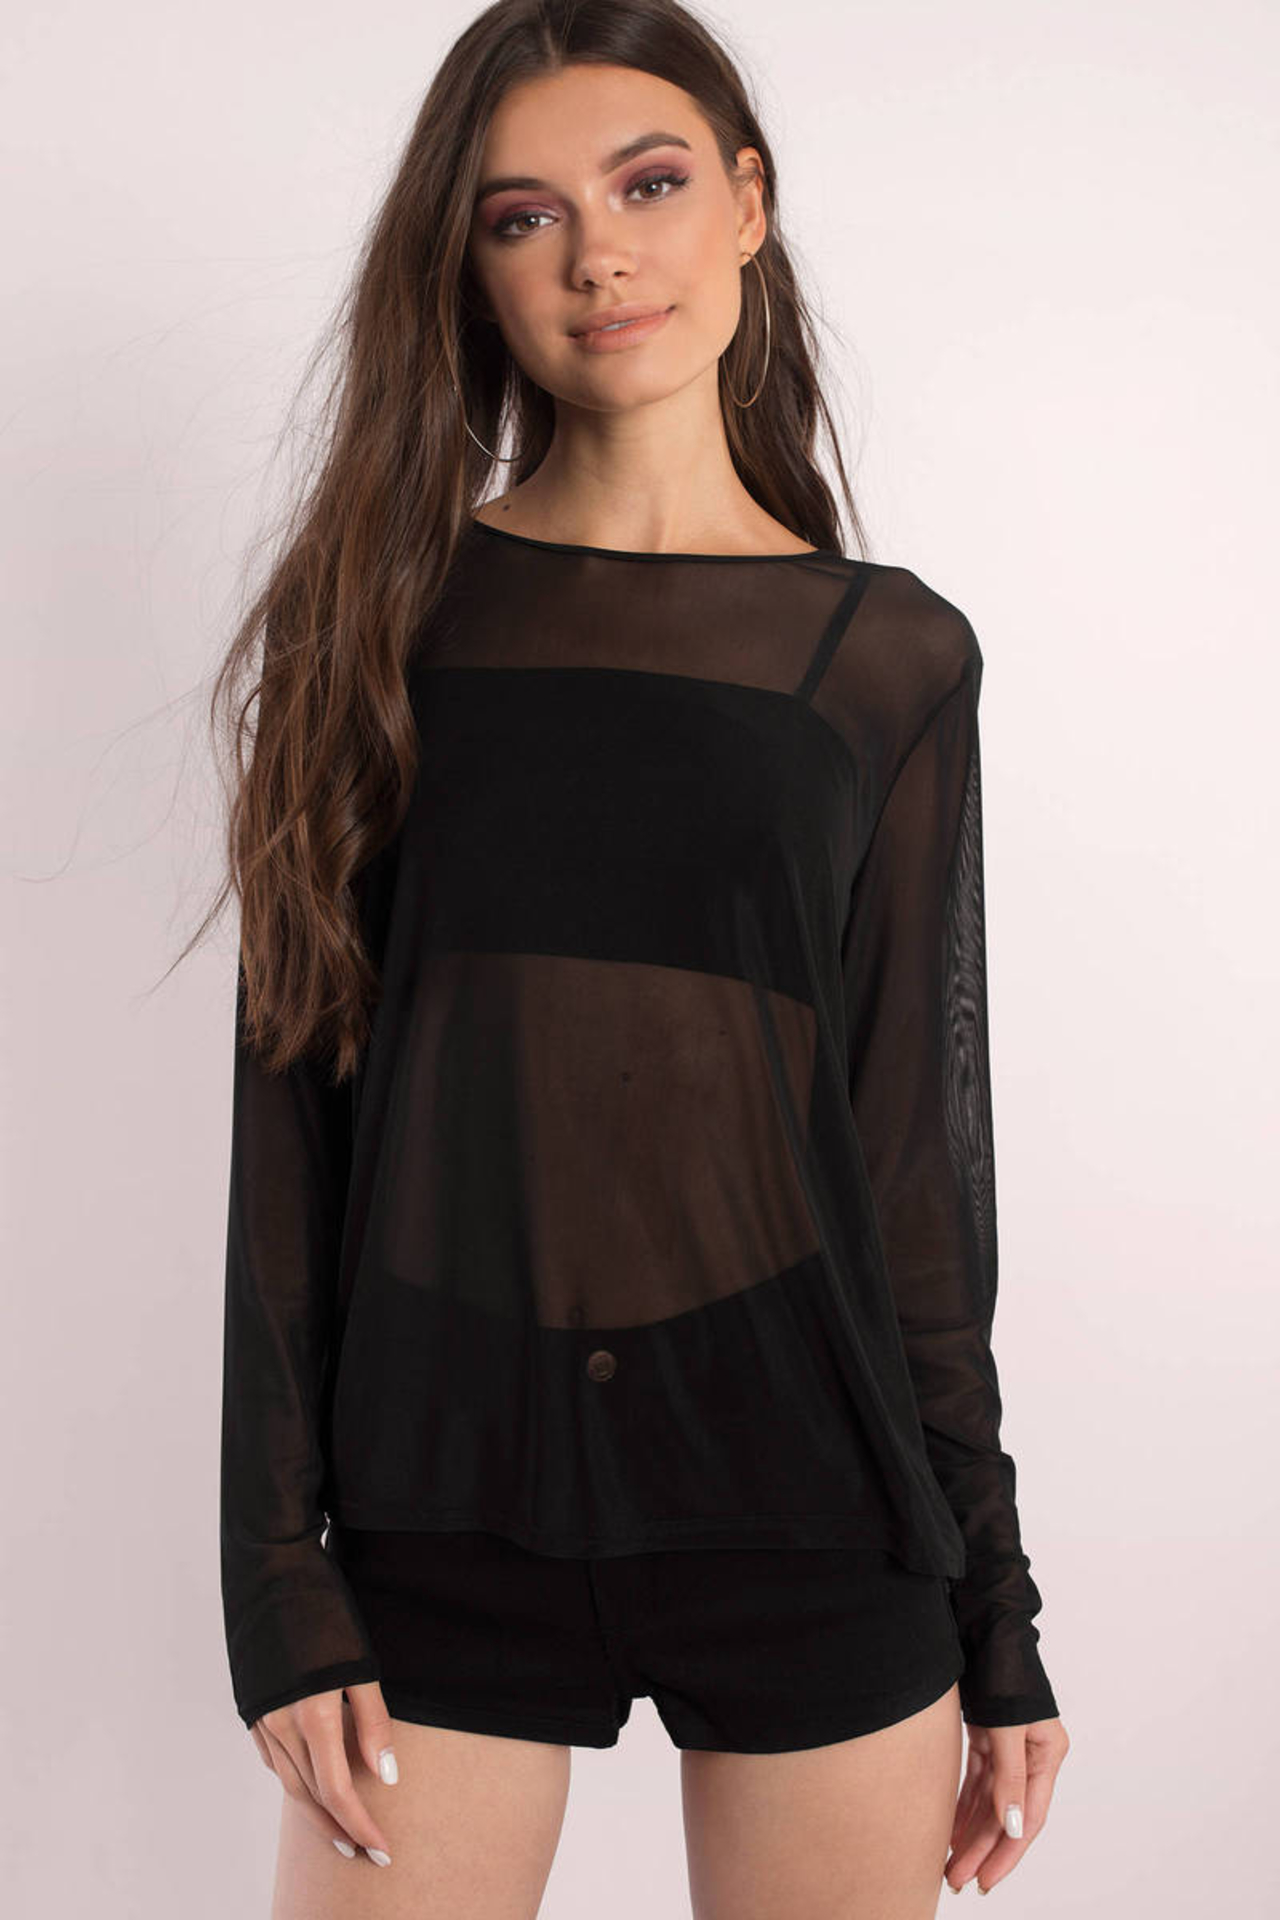 Mesh Top is the Latest Trend image